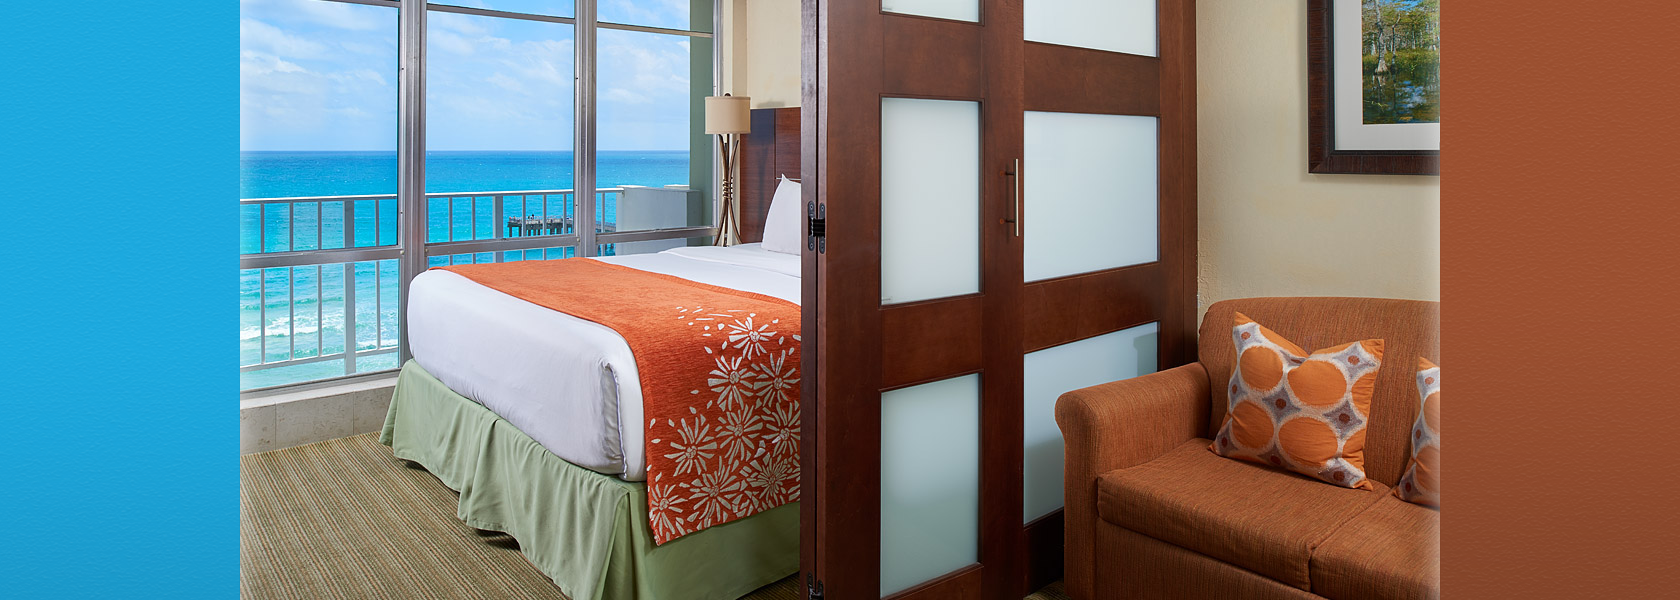 Suite at the Newport Beachside Hotel with view of the ocean